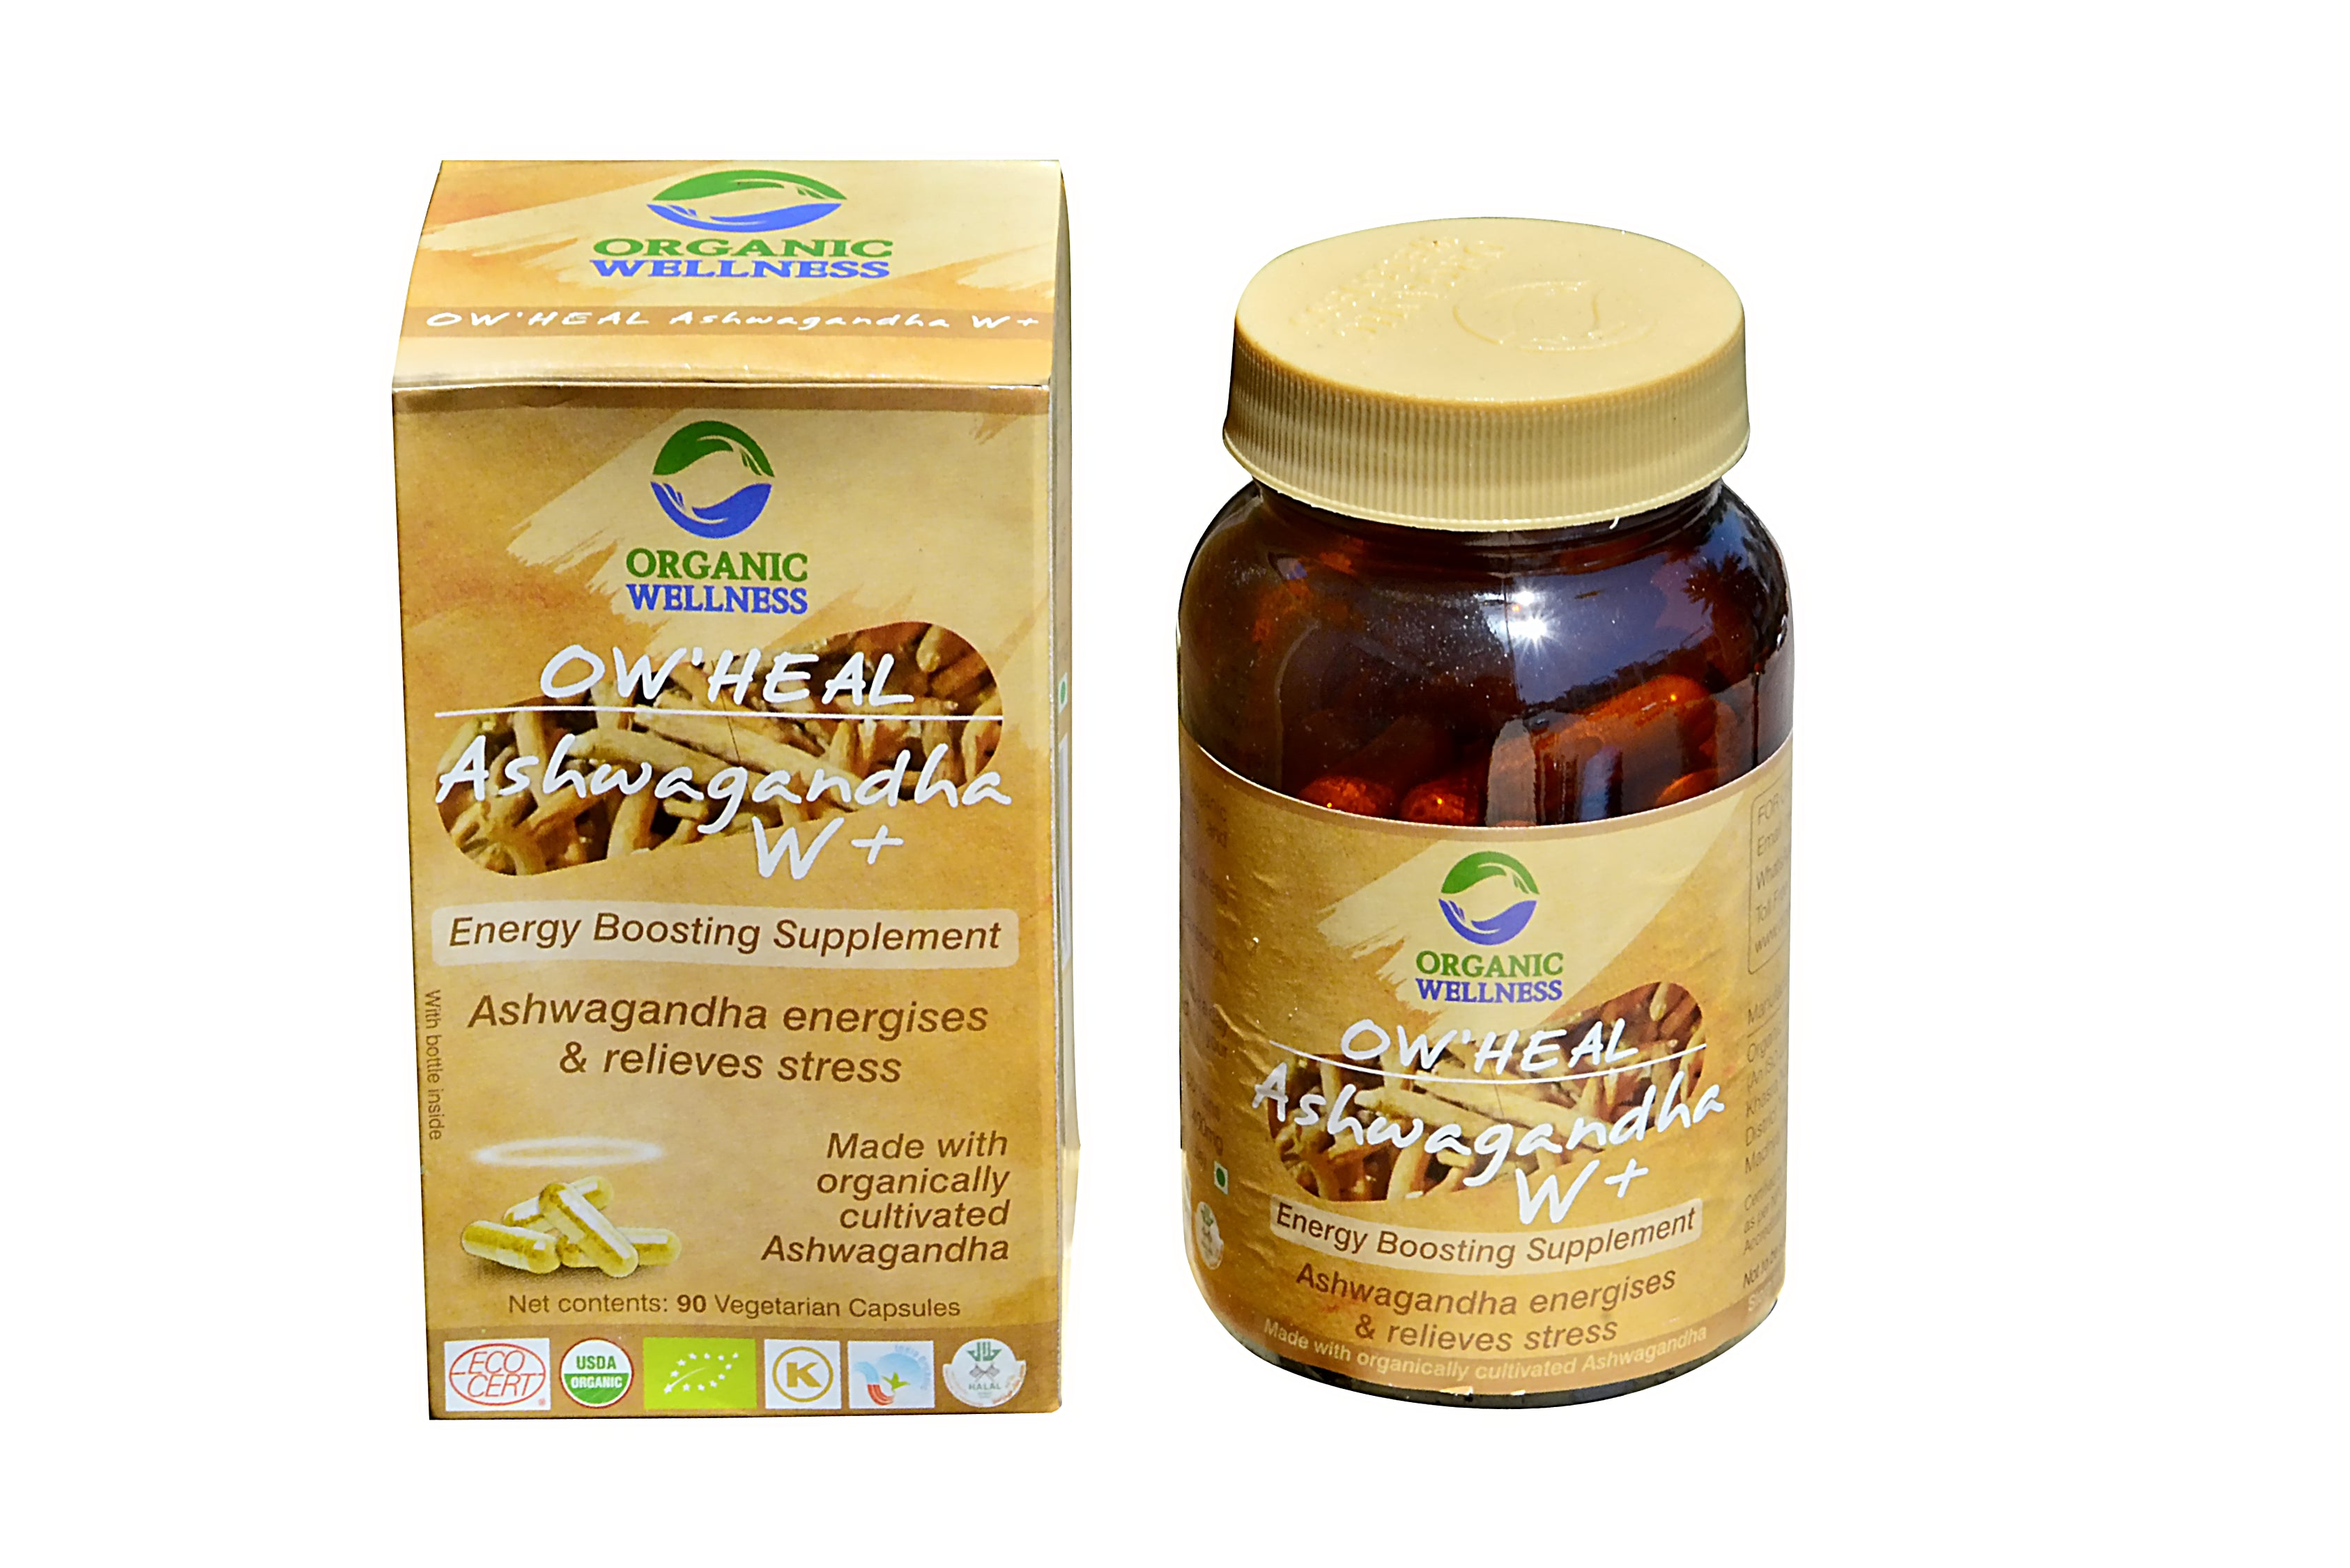 Organic Wellness - Heal Ashwagandha W Plus